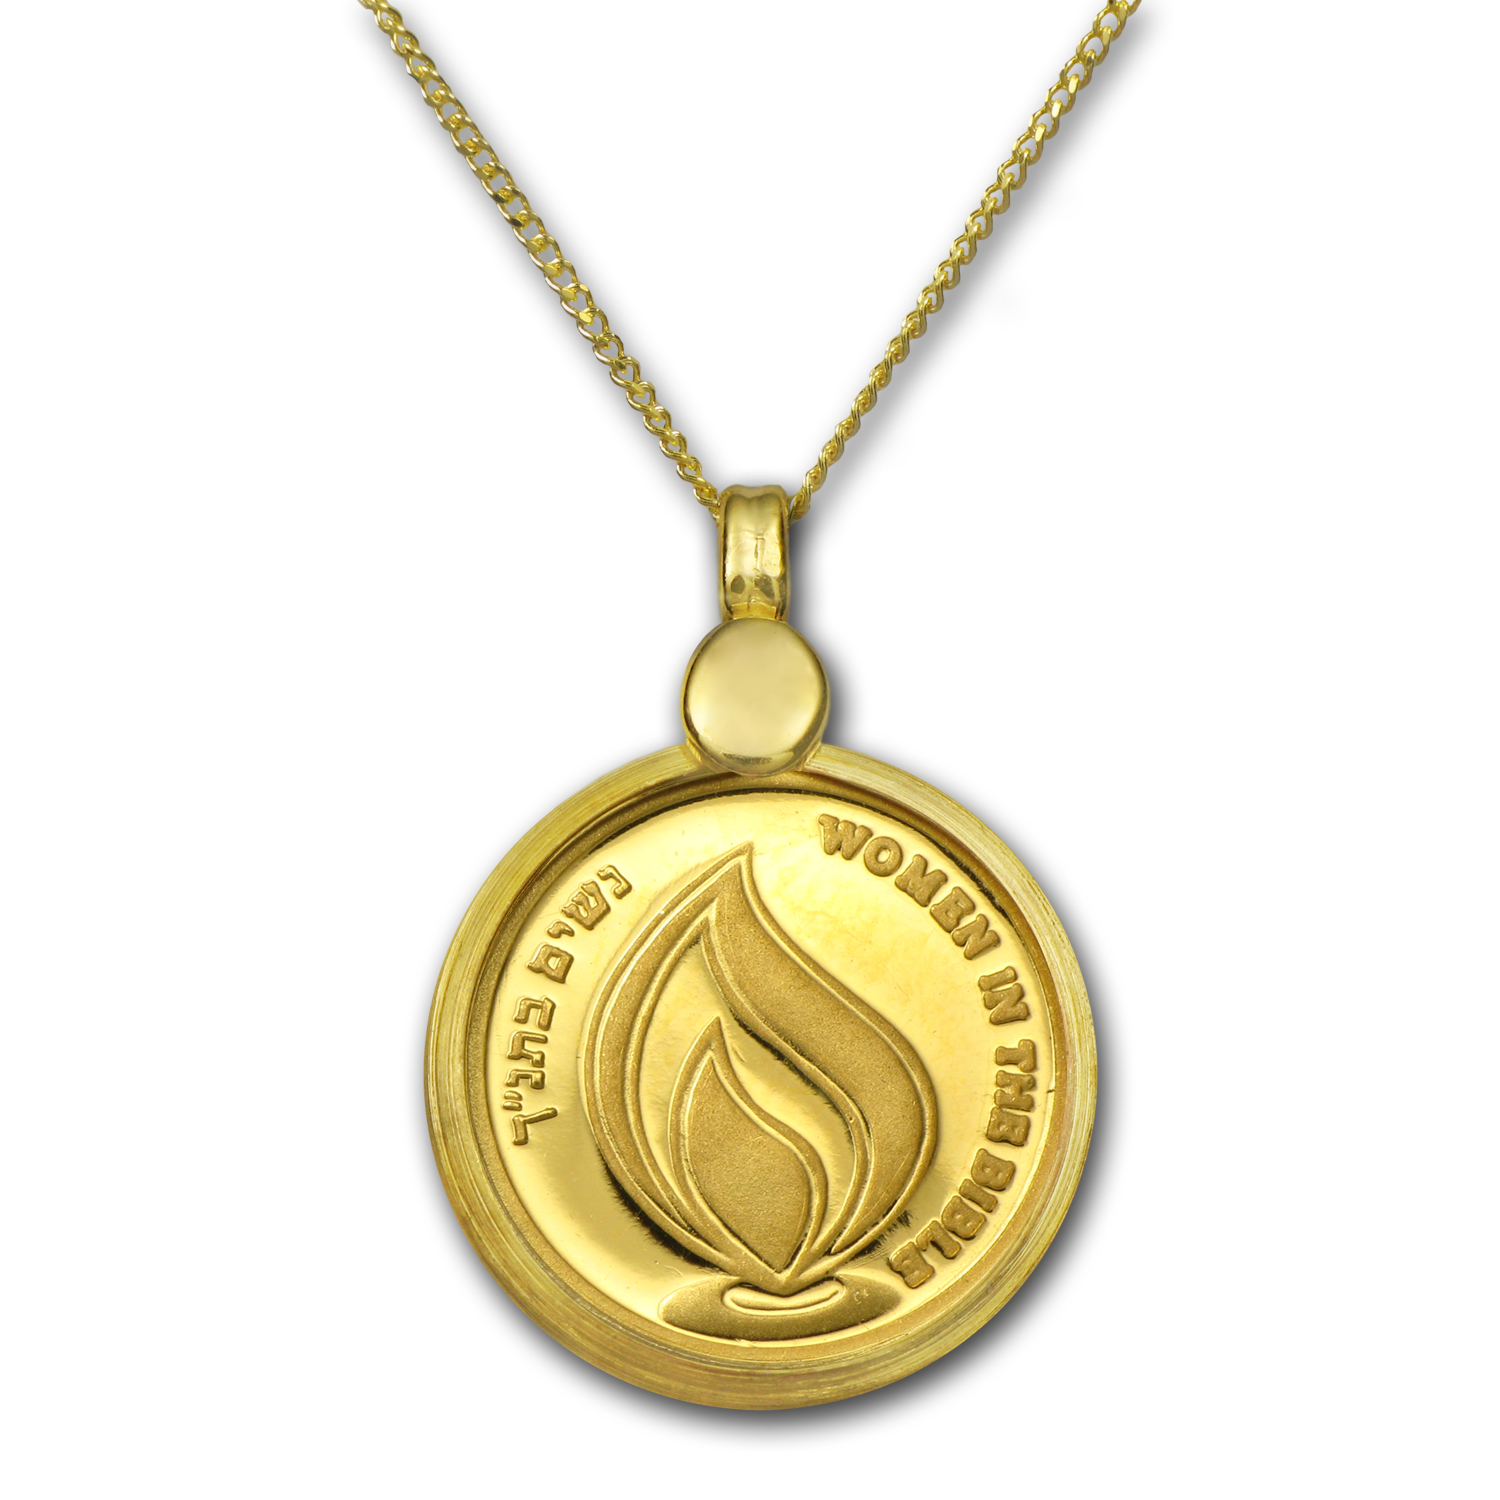 Israel Miriam Gold Necklace - AGW 0.0729 oz